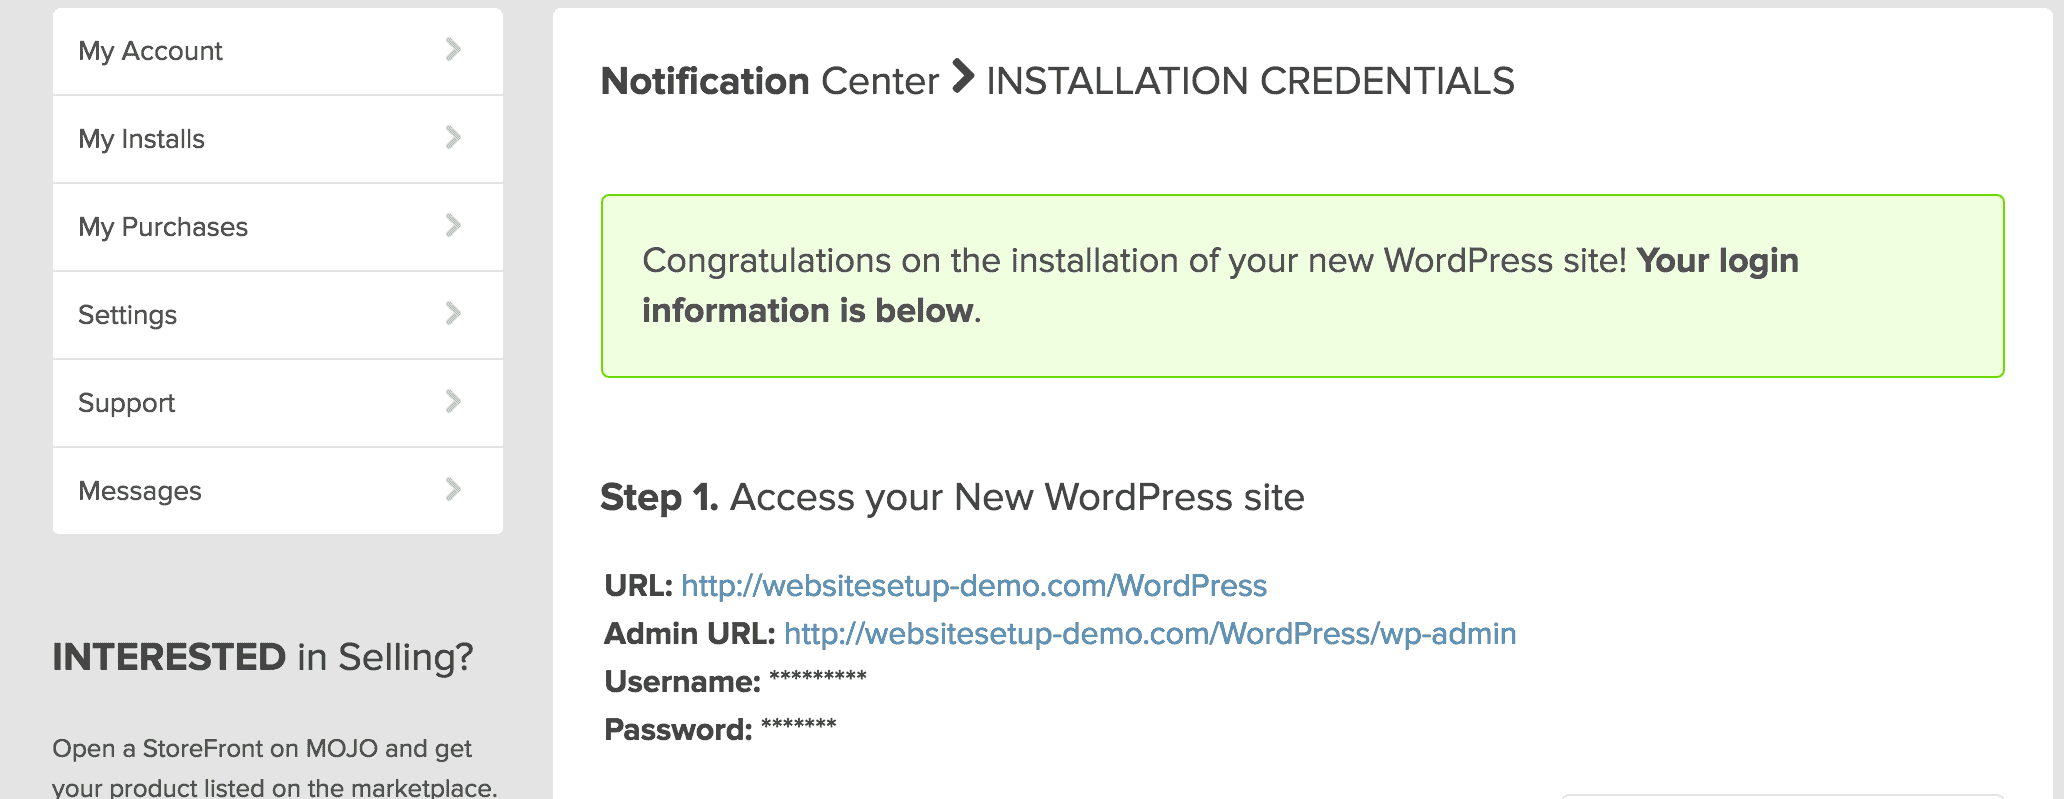 WordPress_notification